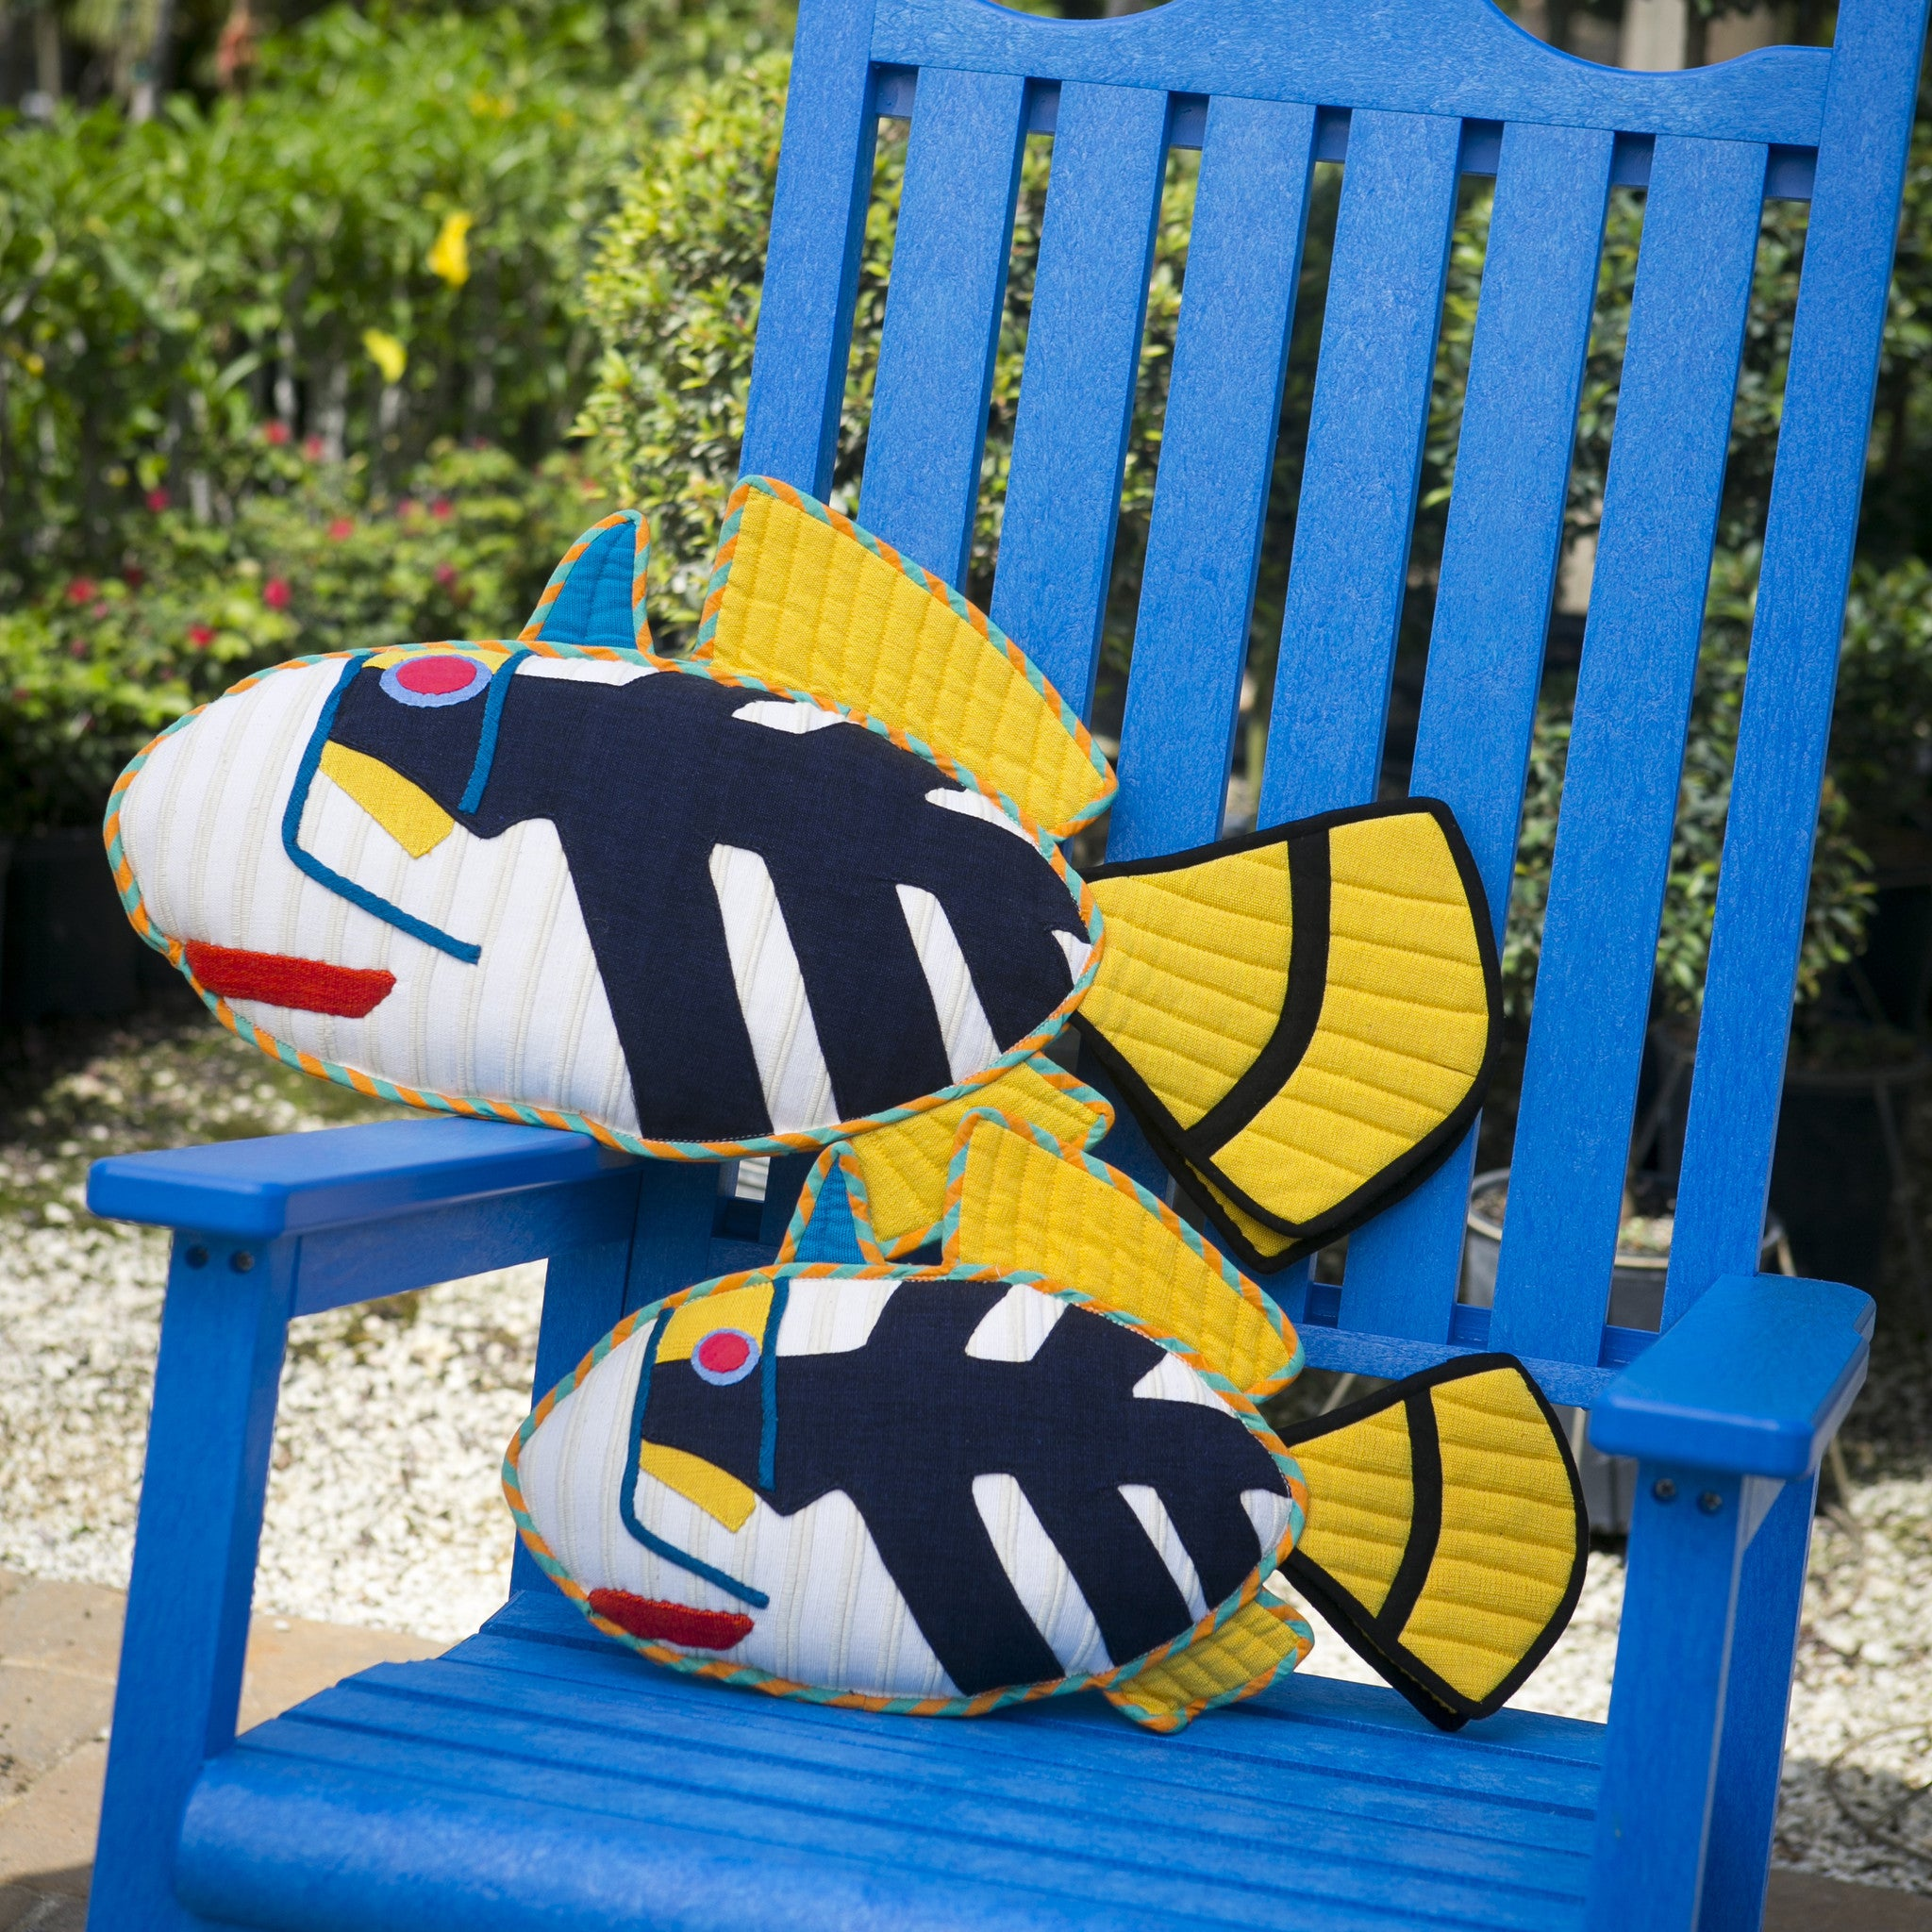 Pepper, the Picasso Trigger Fish – Adding the perfect punch of color! (small & large sizes)